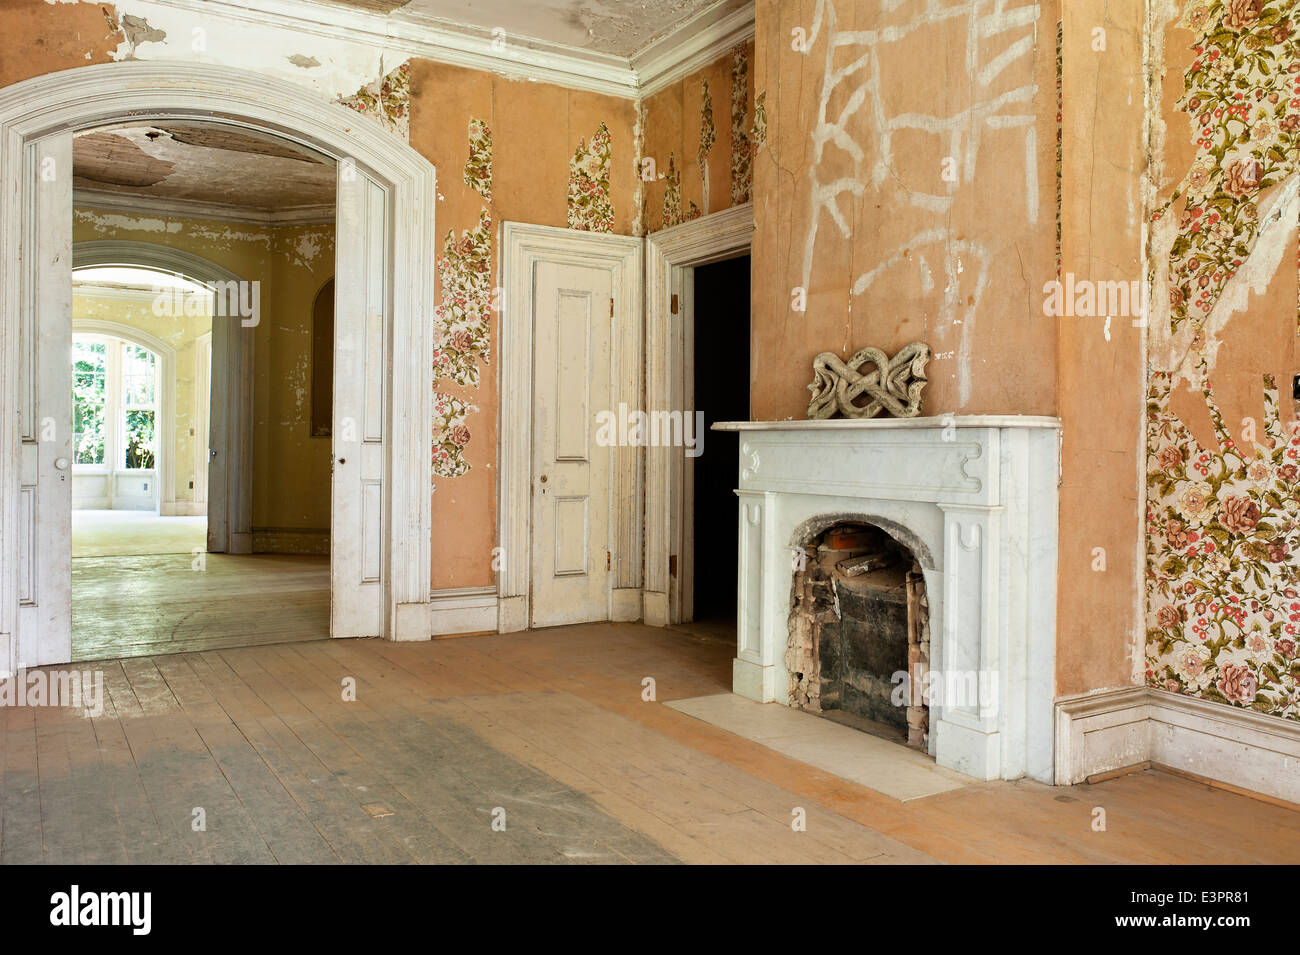 old bricked up fireplace in empty room with peeling wallpaper and